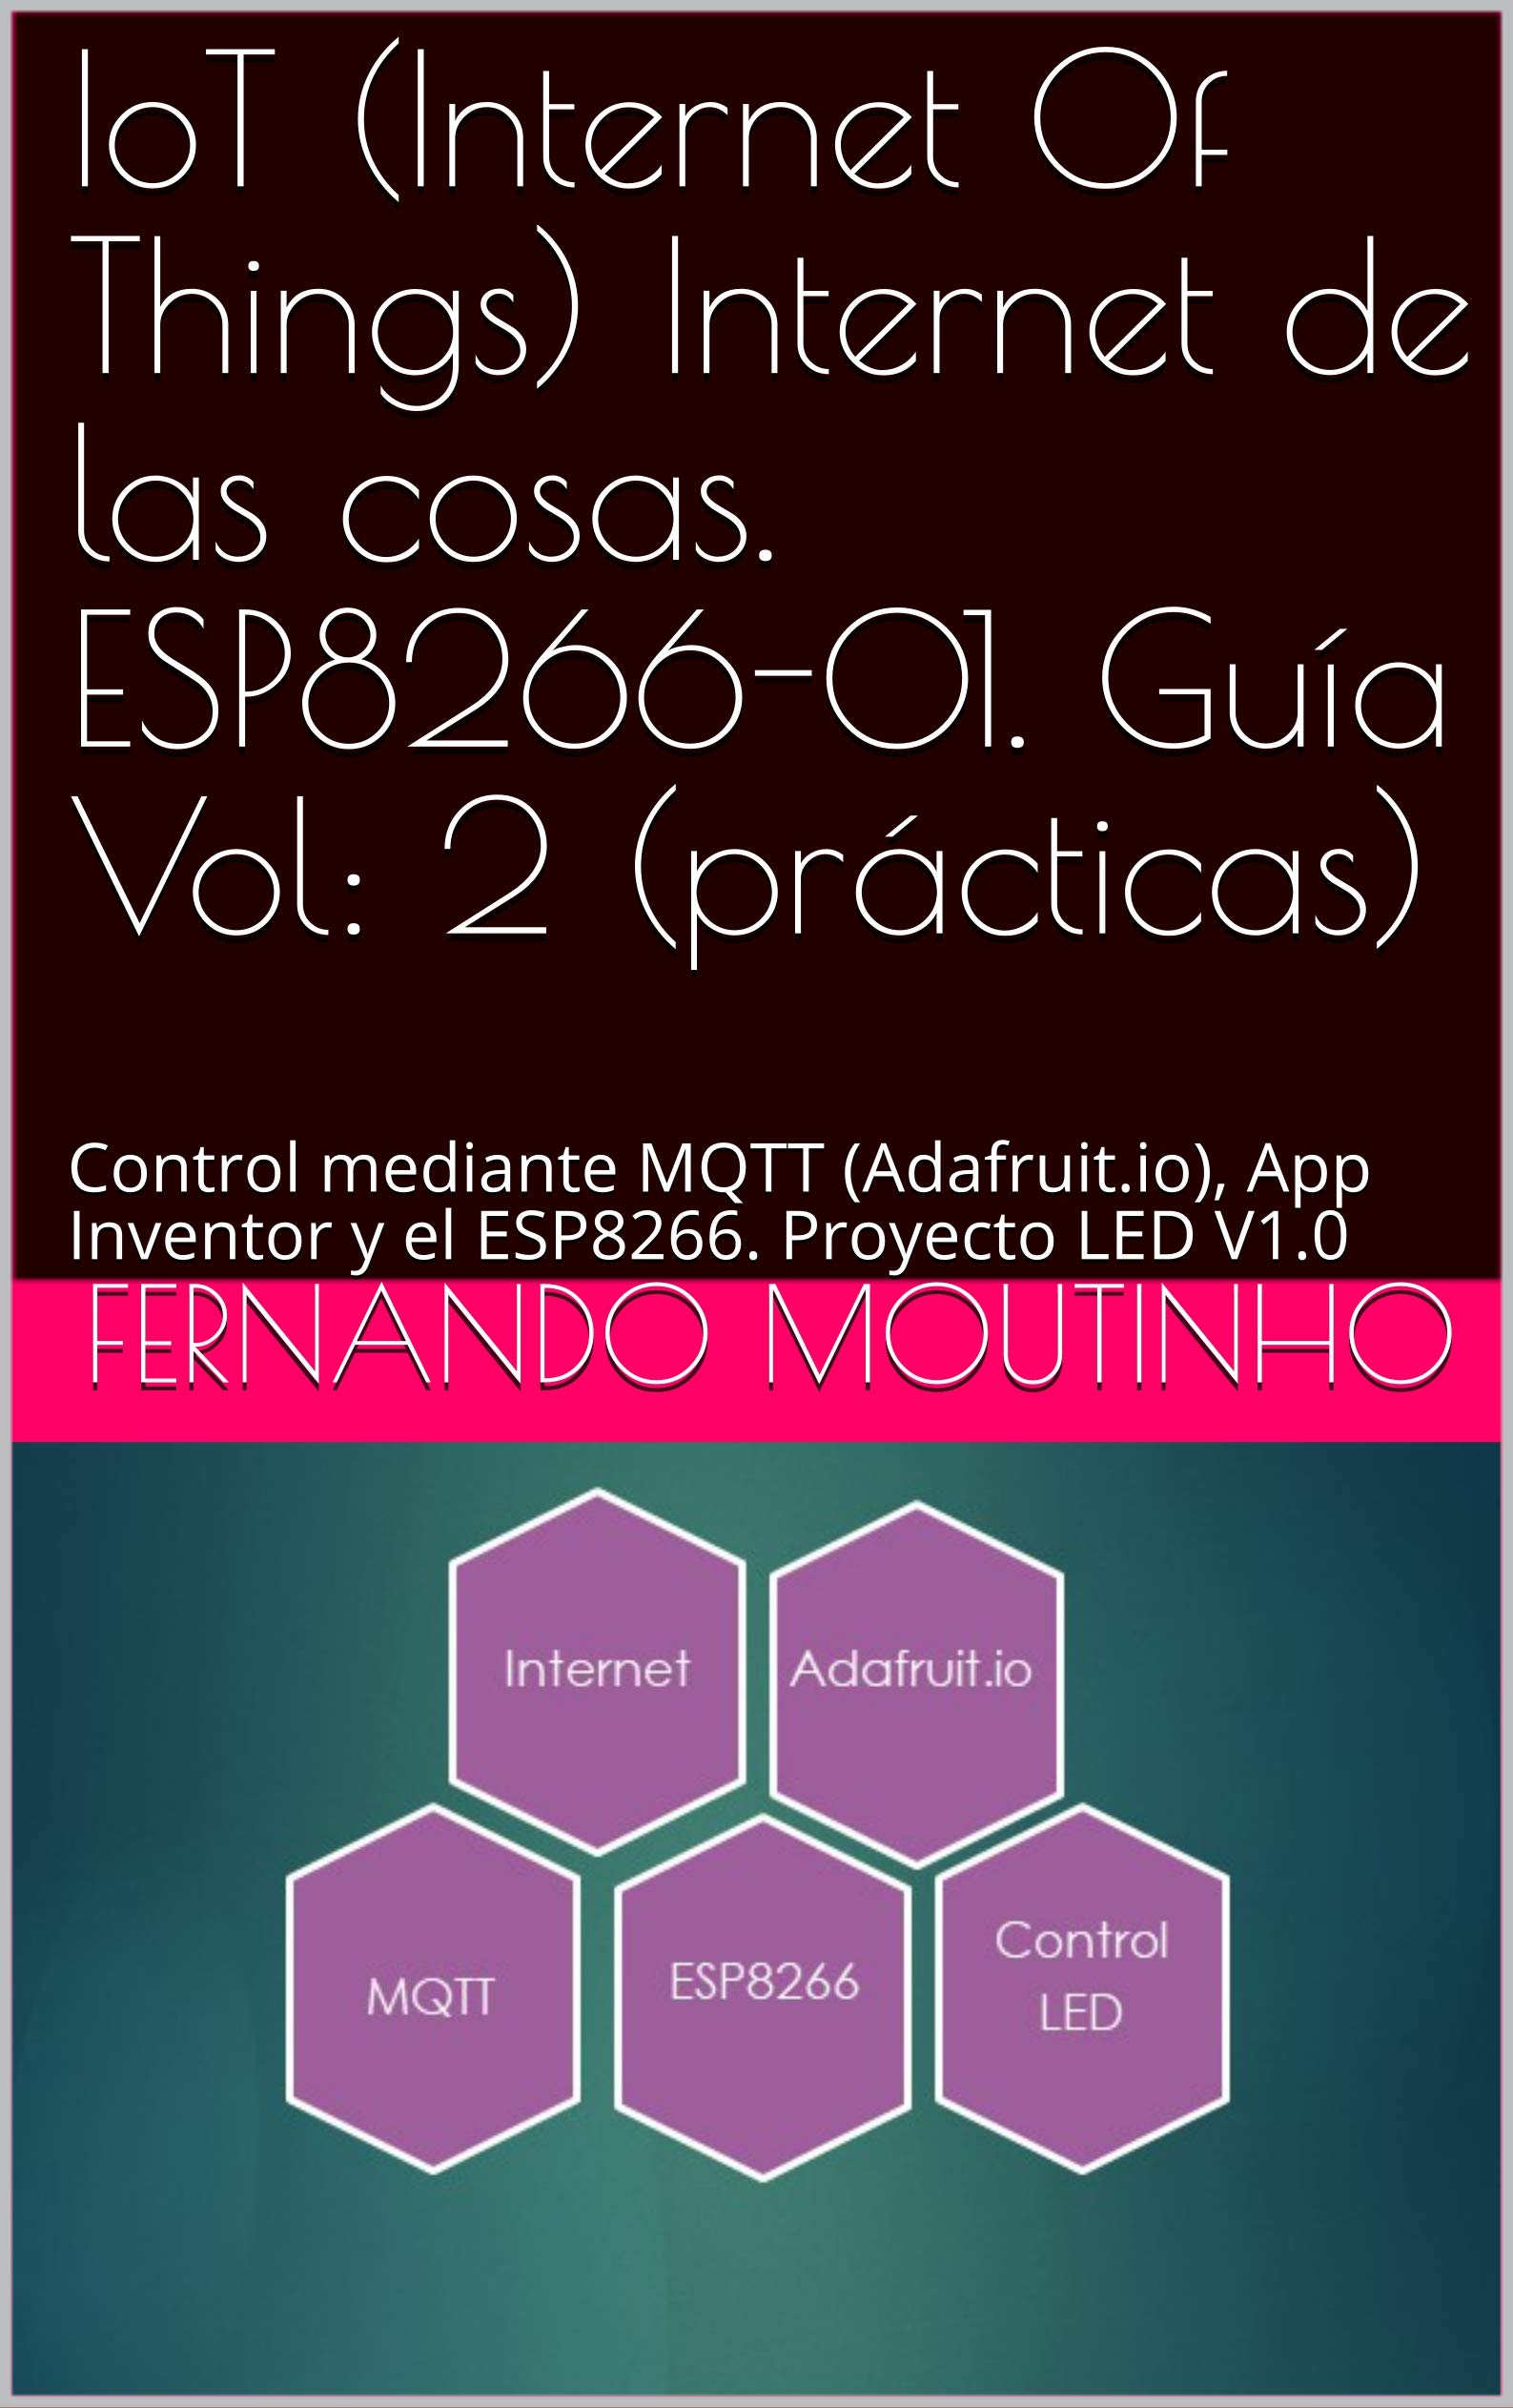 Image OfIoT (Internet Of Things) Internet De Las Cosas. ESP8266-01. Guía Vol: 2 (prácticas): Control Mediante MQTT (Adafruit.io), ...